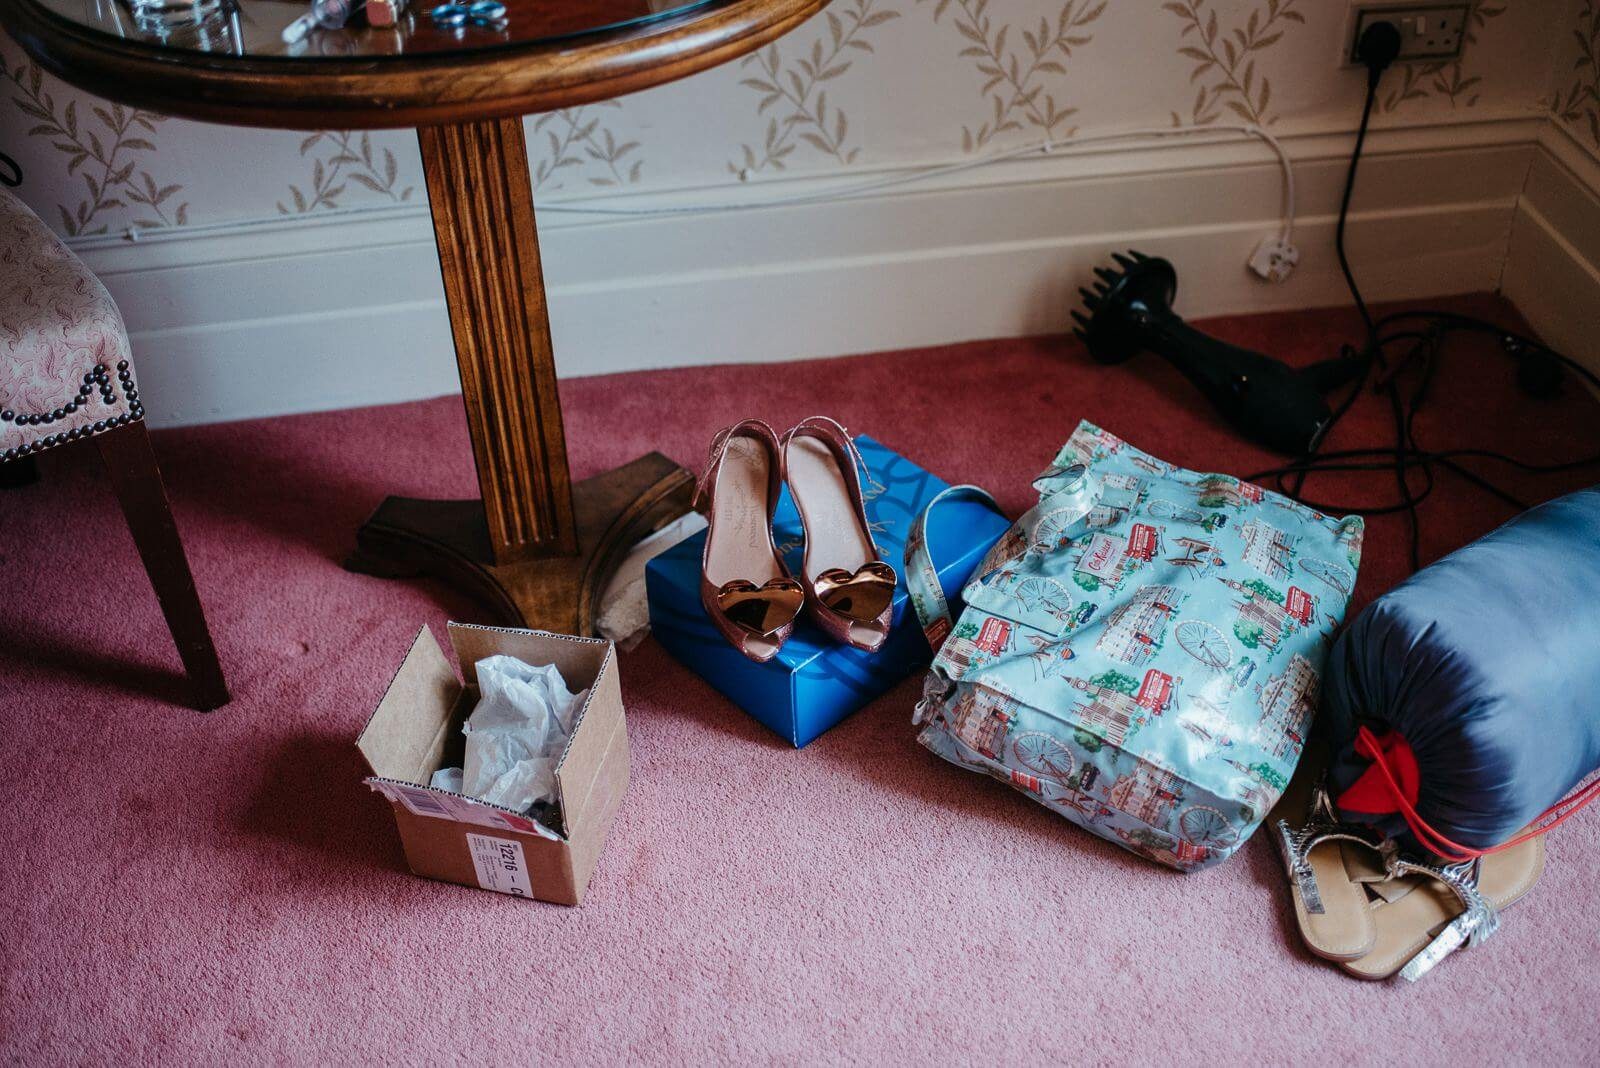 Brides shoes and other items during bridal prep